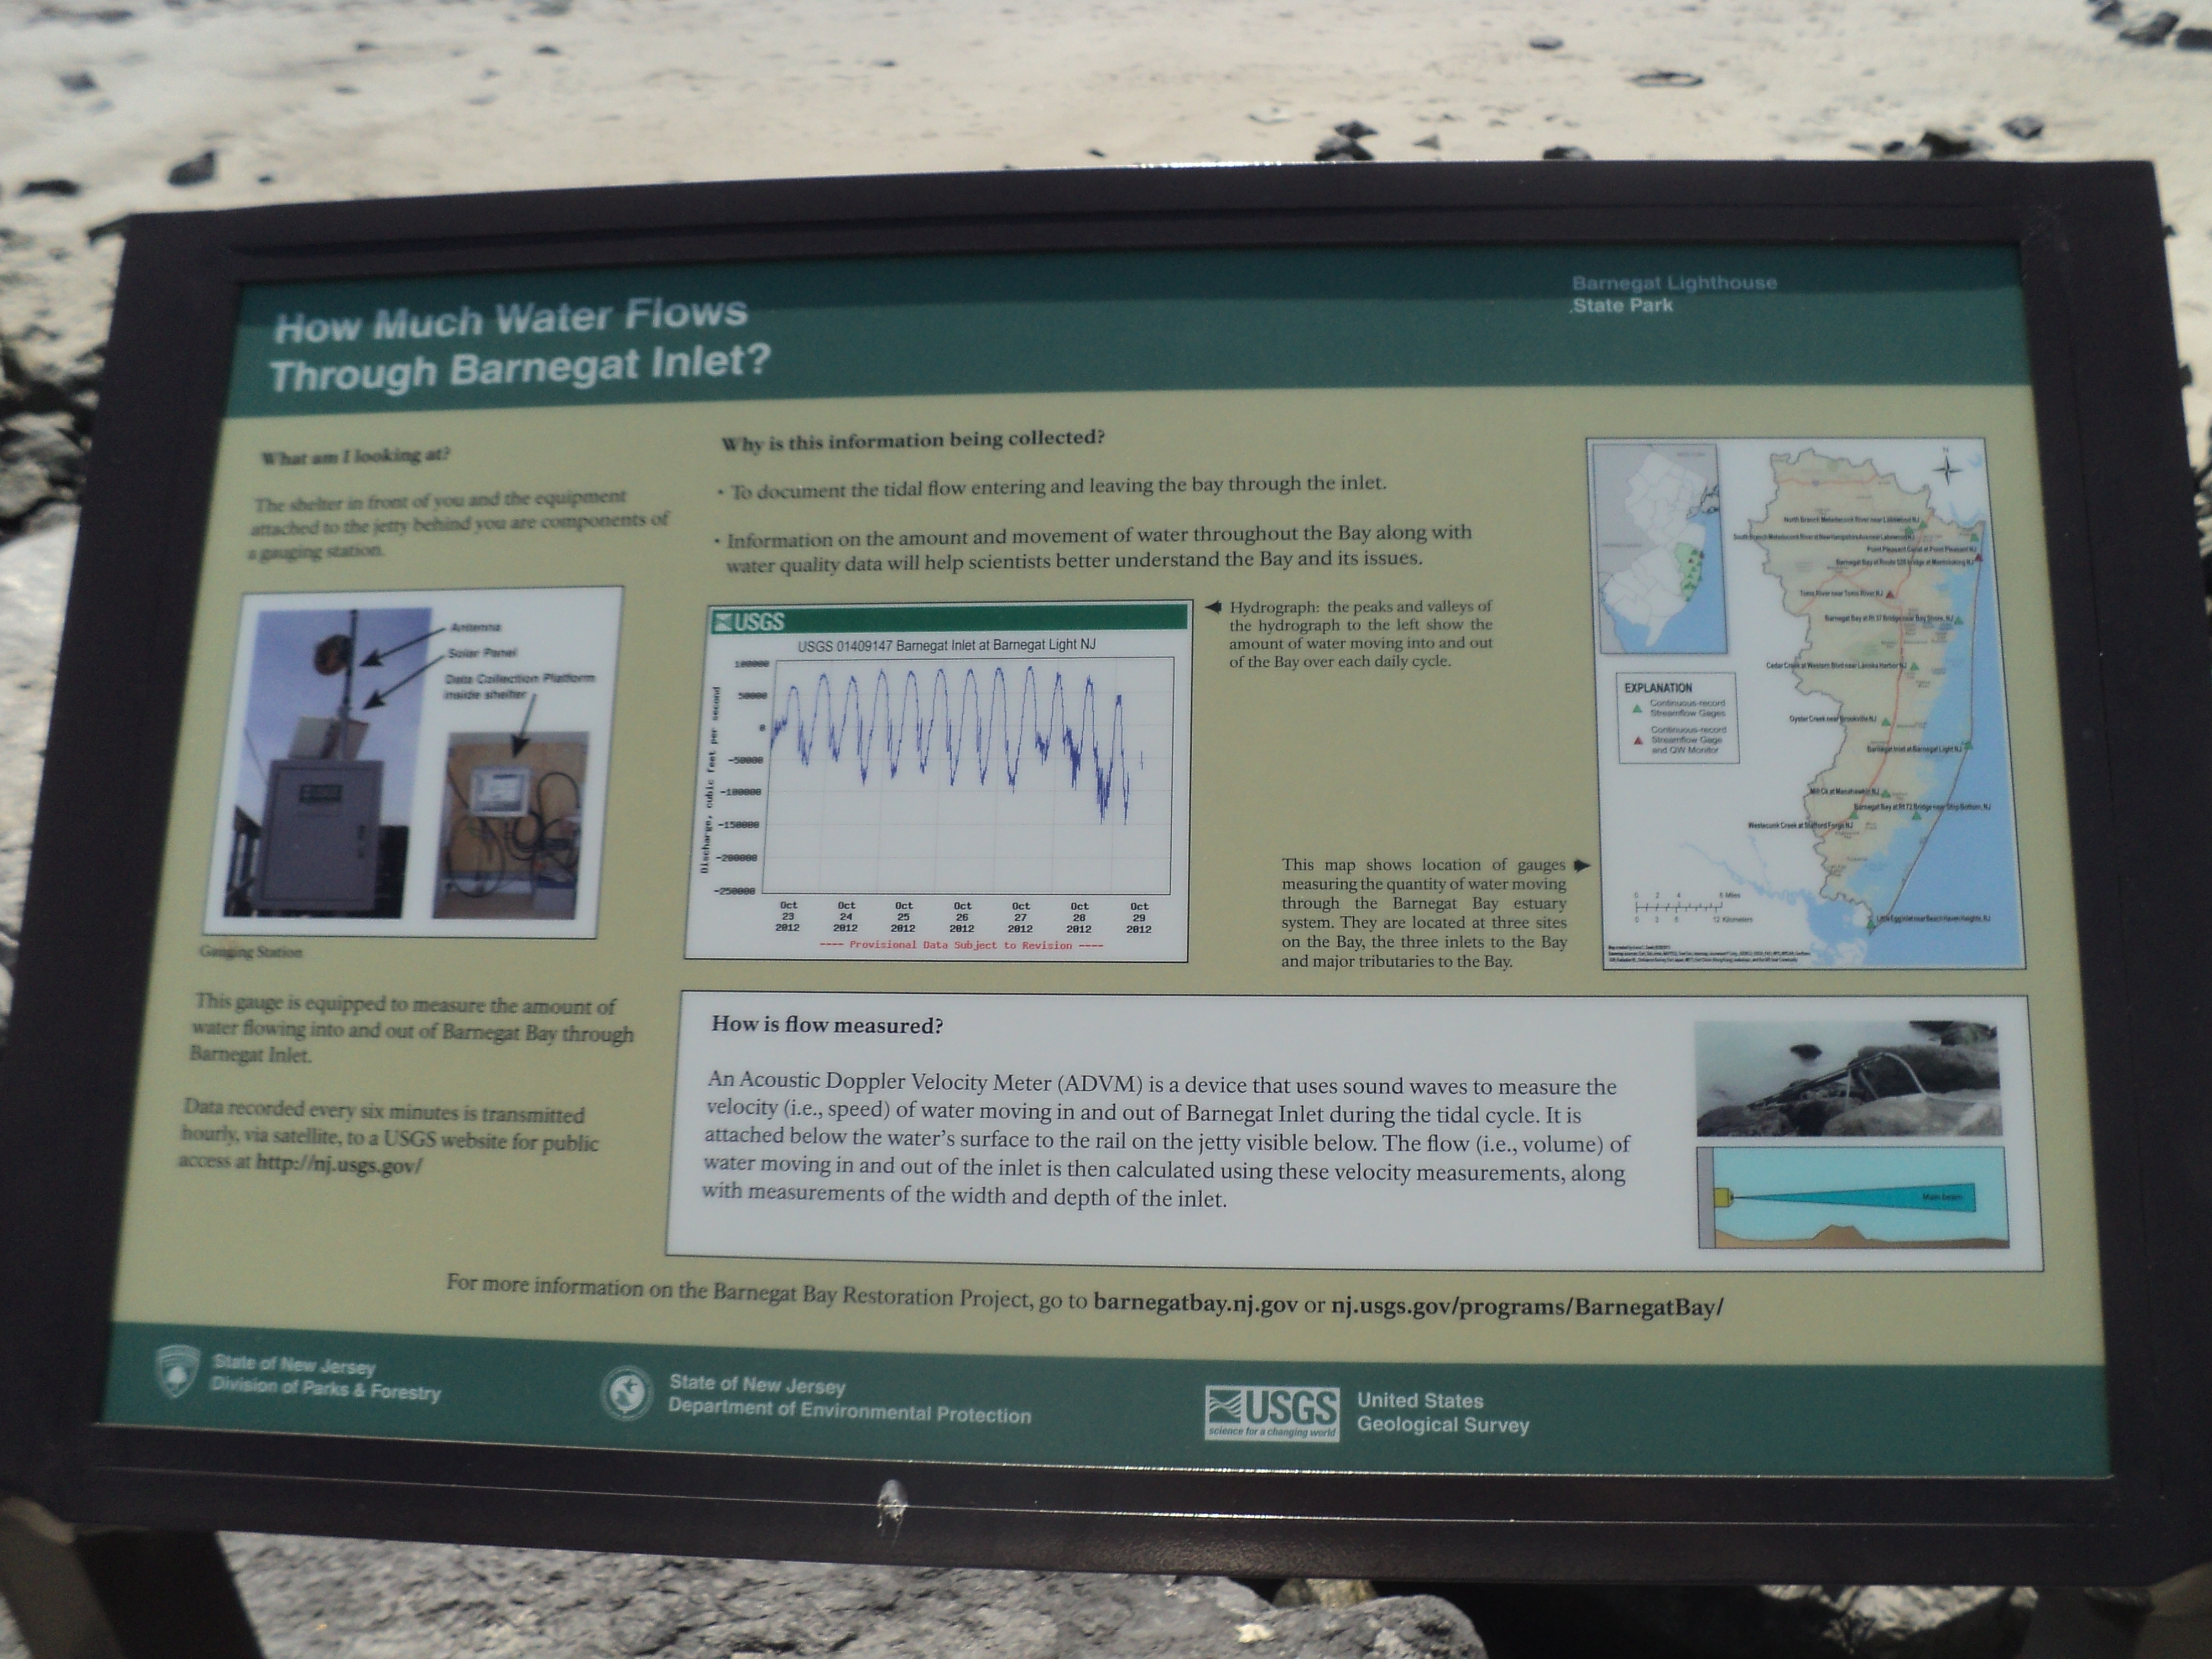 How Much Water Flows Through Barnegat Inlet Marker